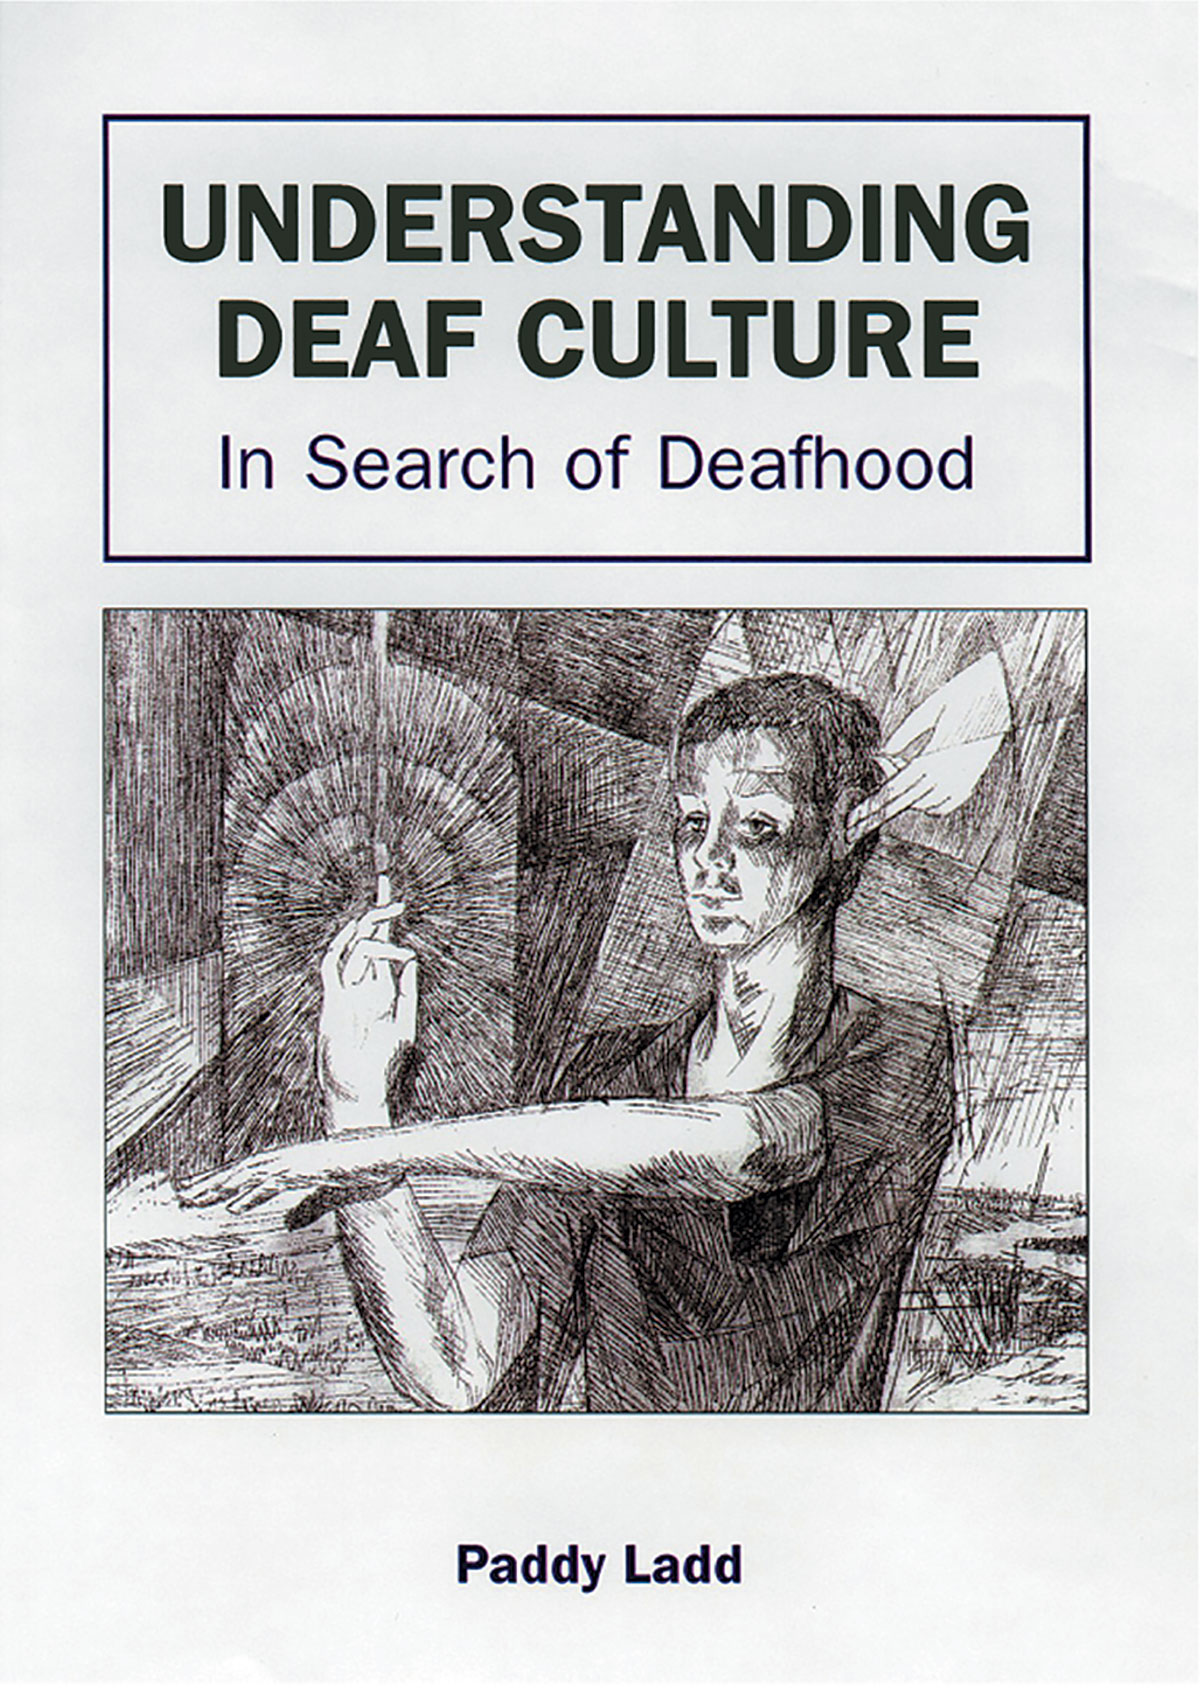 Understanding Deaf Culture: In Search of Deafhood